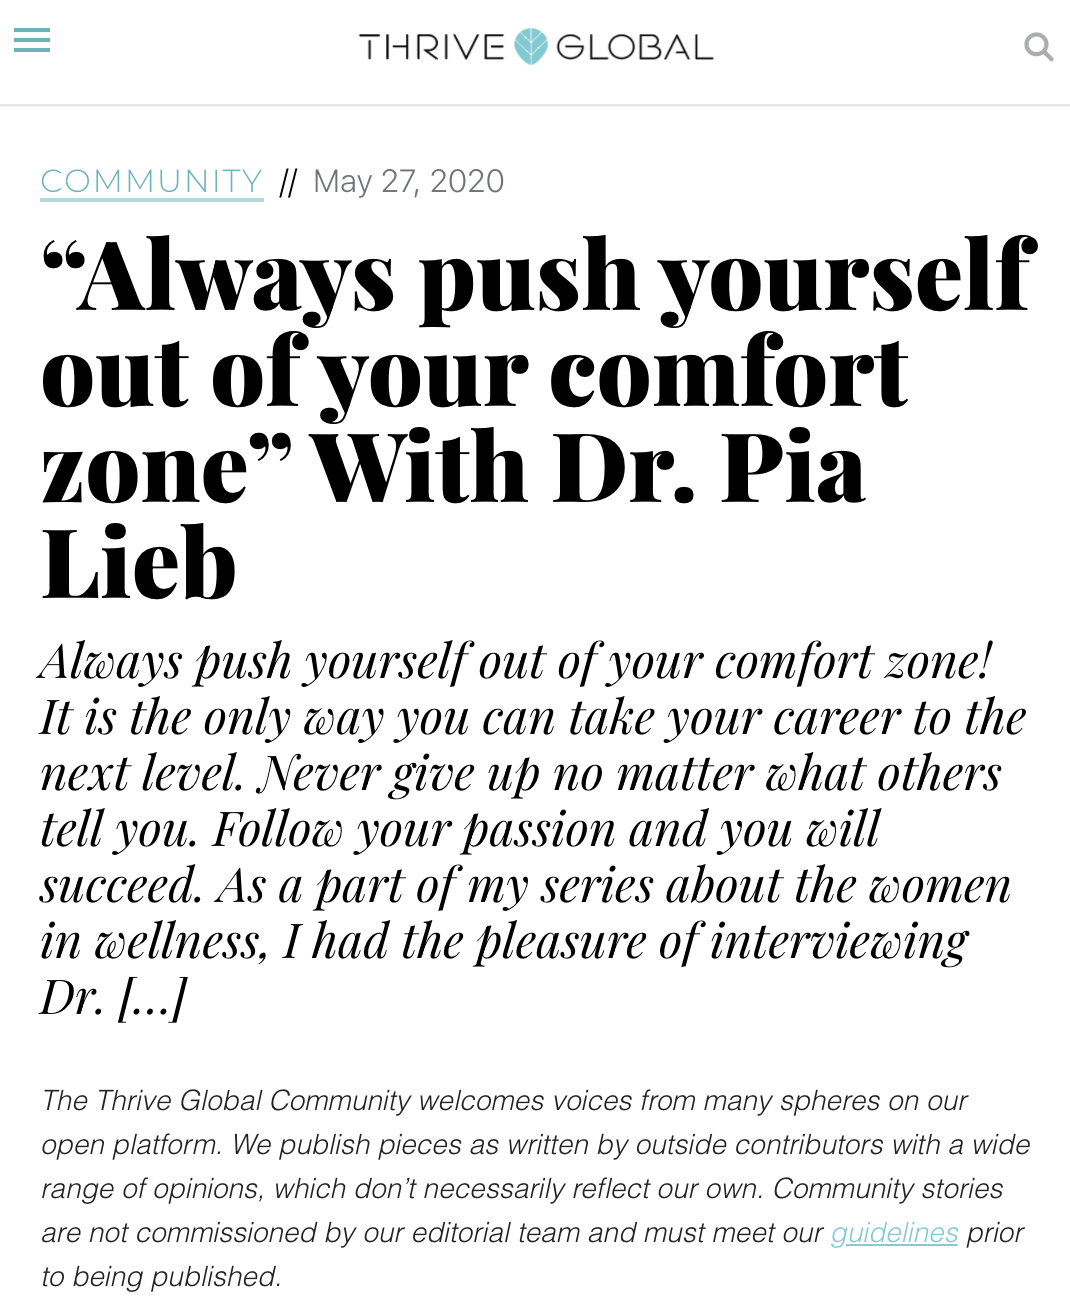 Link to a Thrive Global Article about Always pushing yourself out of your comfort zone.